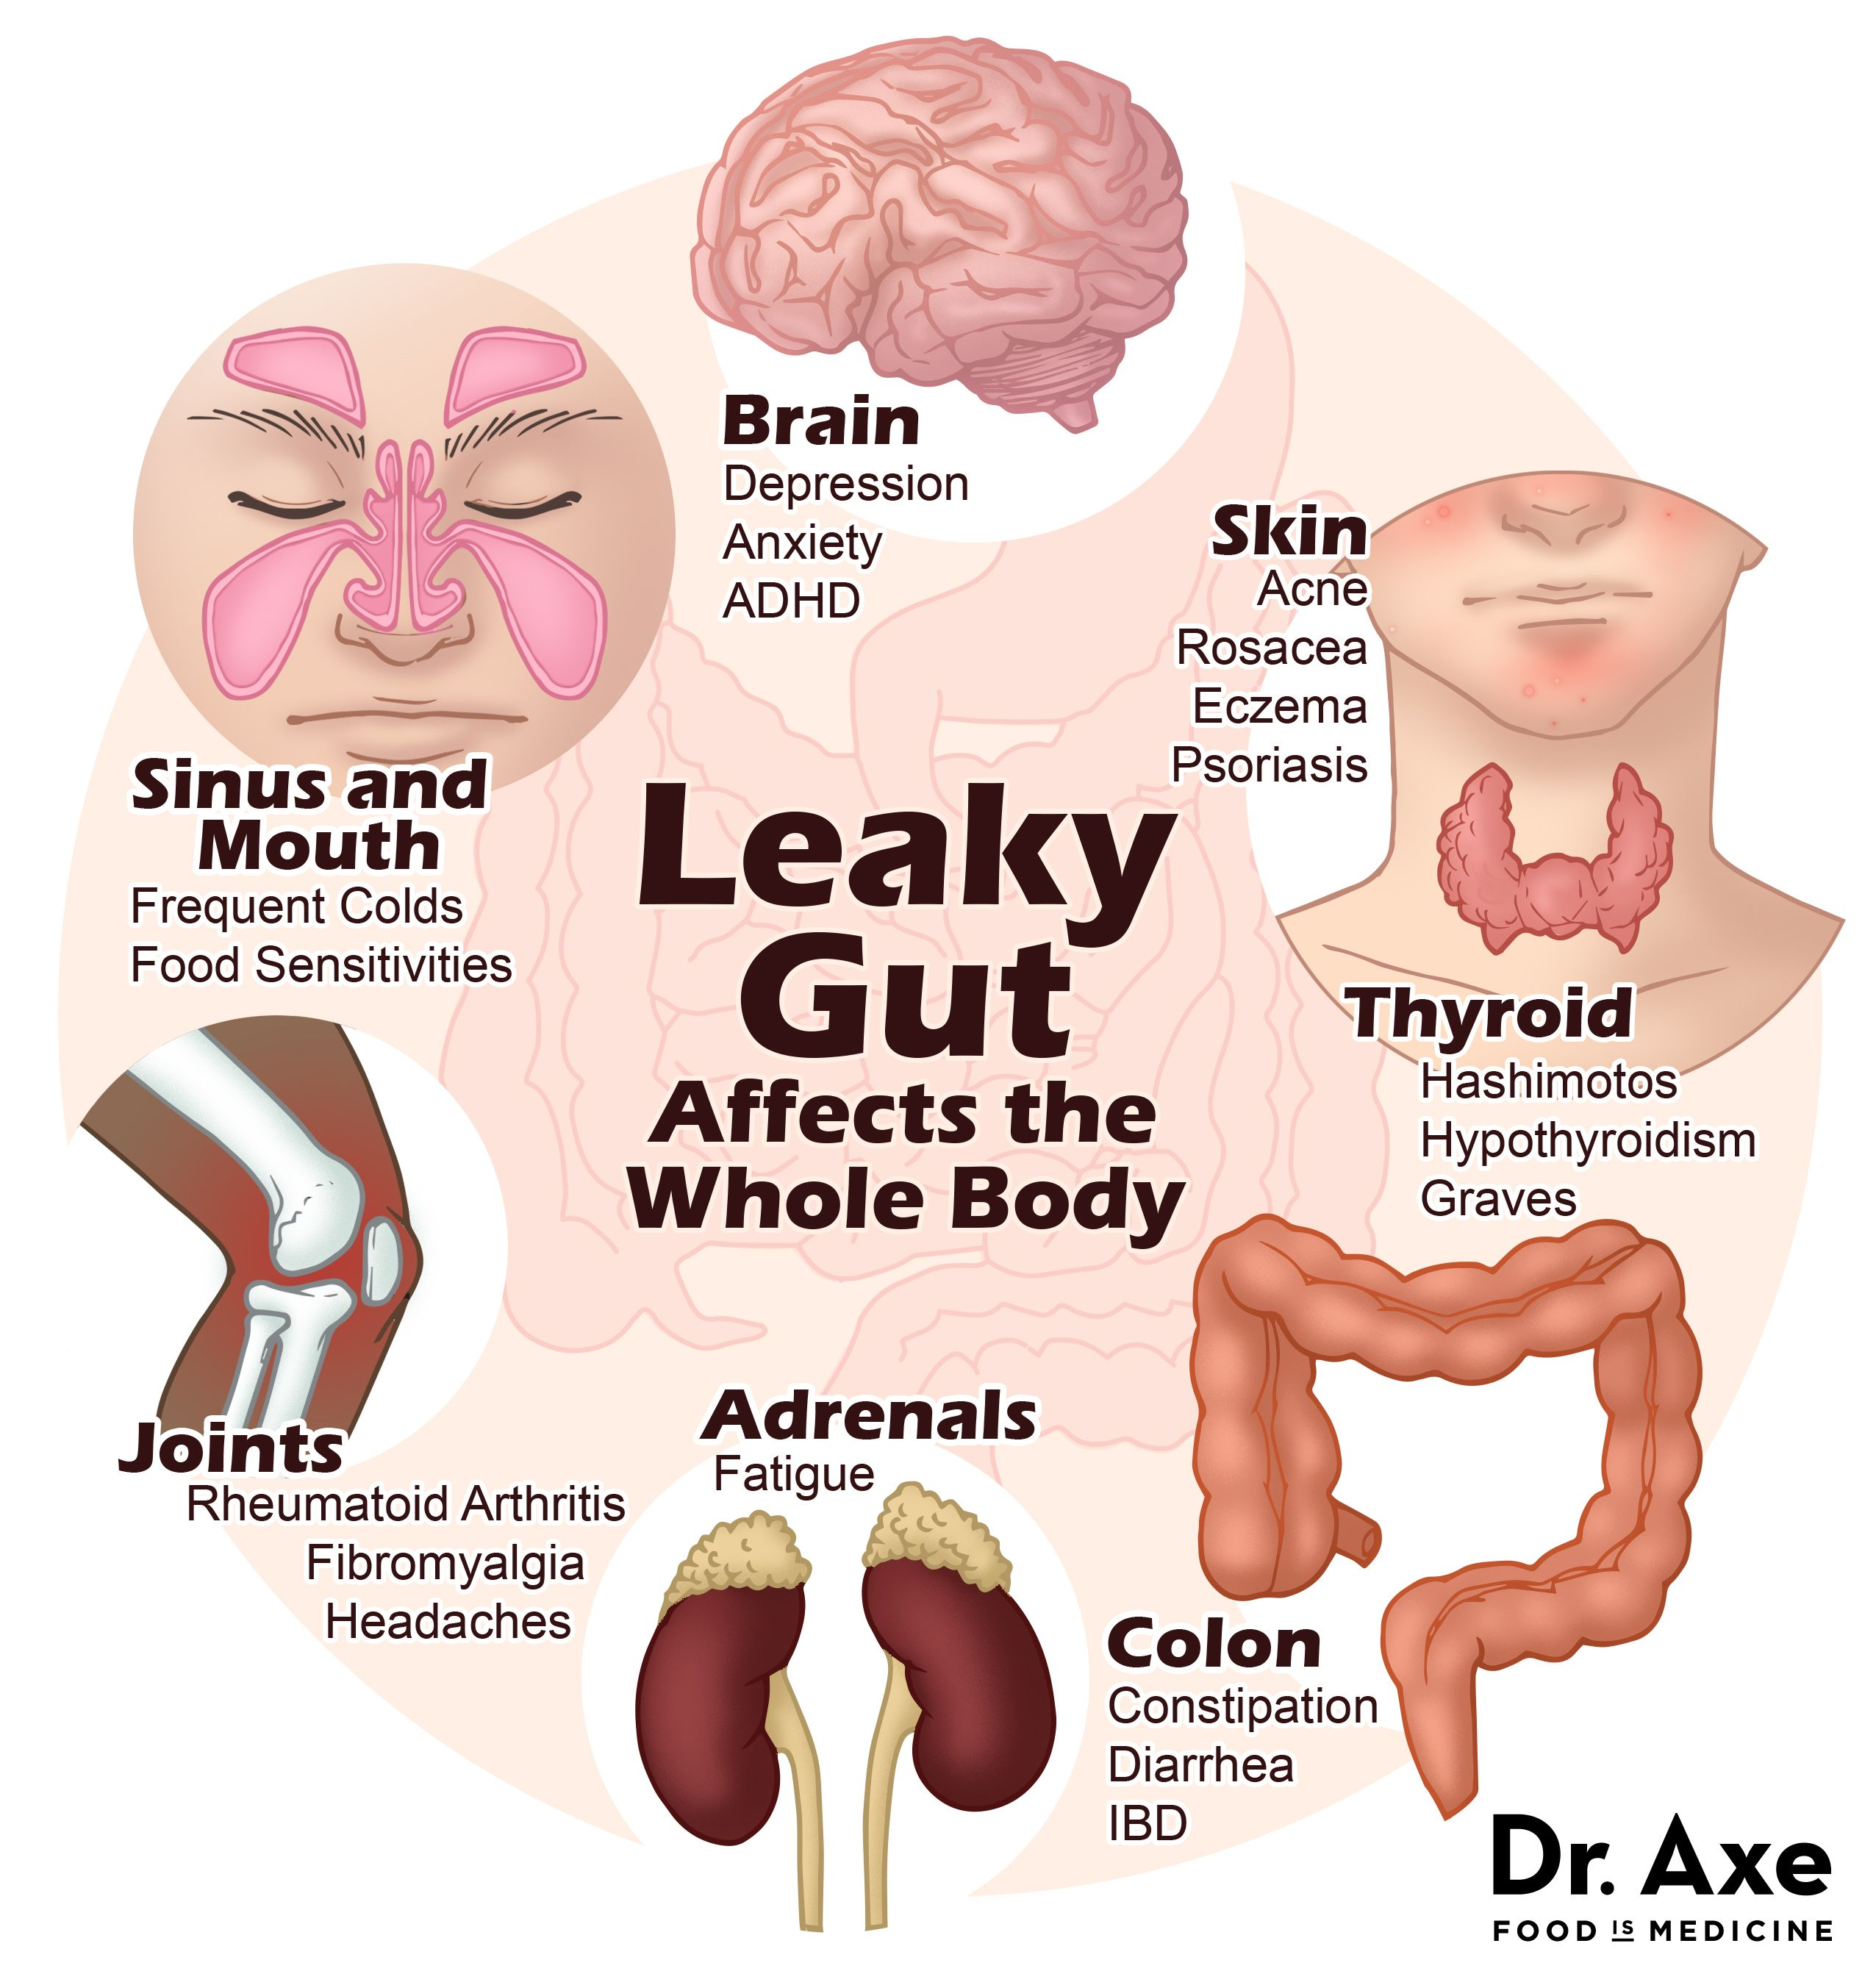 The Leaky Gut Diet Plan: What to Eat, What to Avoid